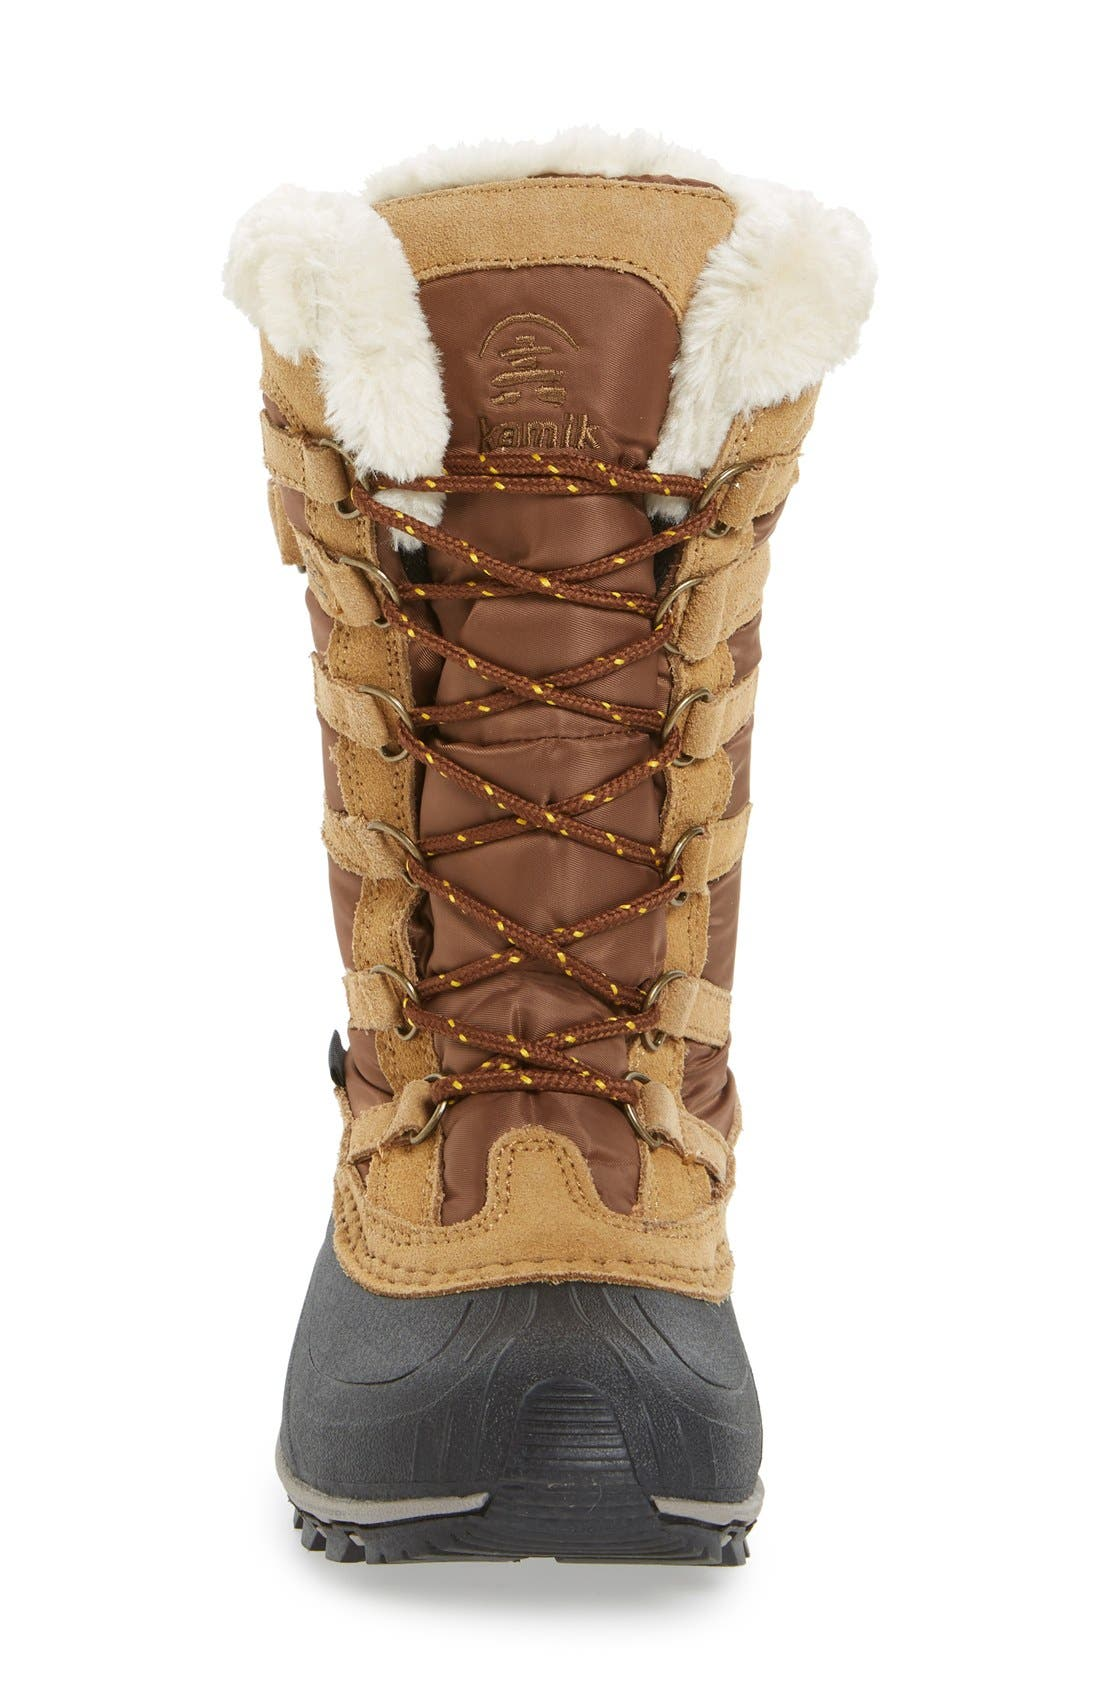 Snowvalley Waterproof Boot with Faux Fur Cuff,                             Alternate thumbnail 3, color,                             Tan